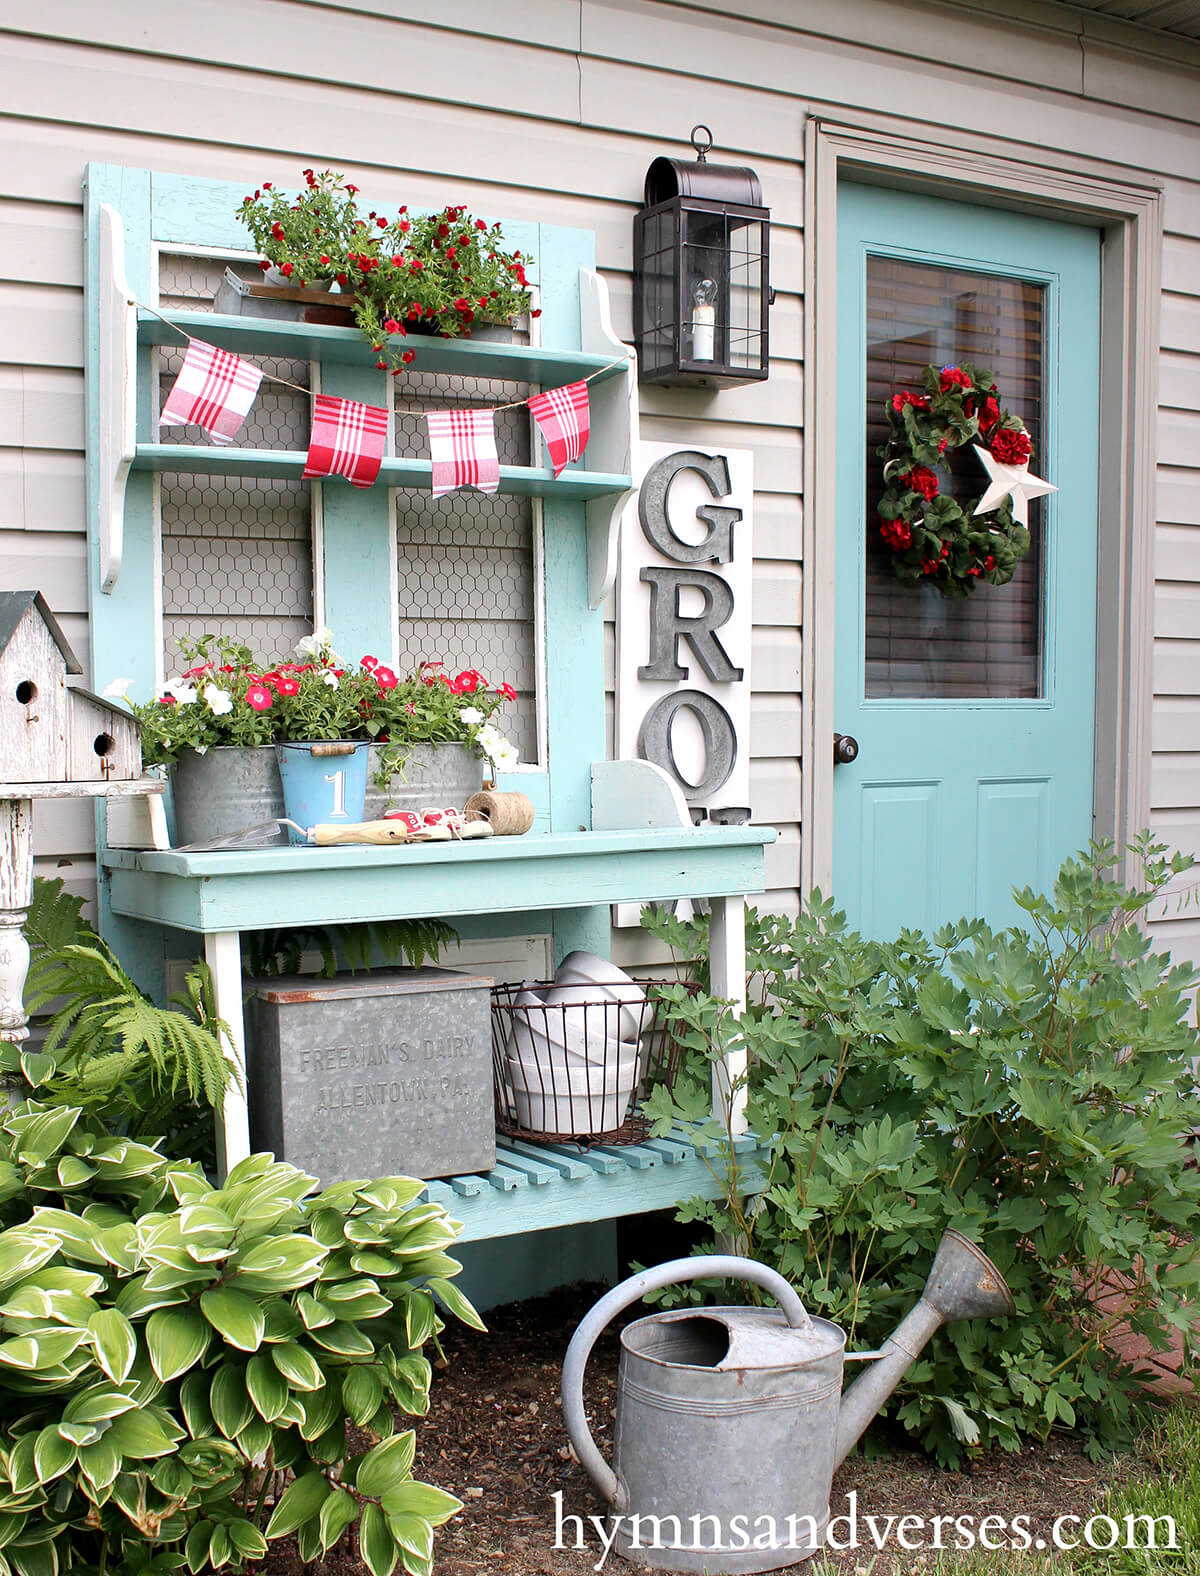 Garden Décor that Matches Your Door